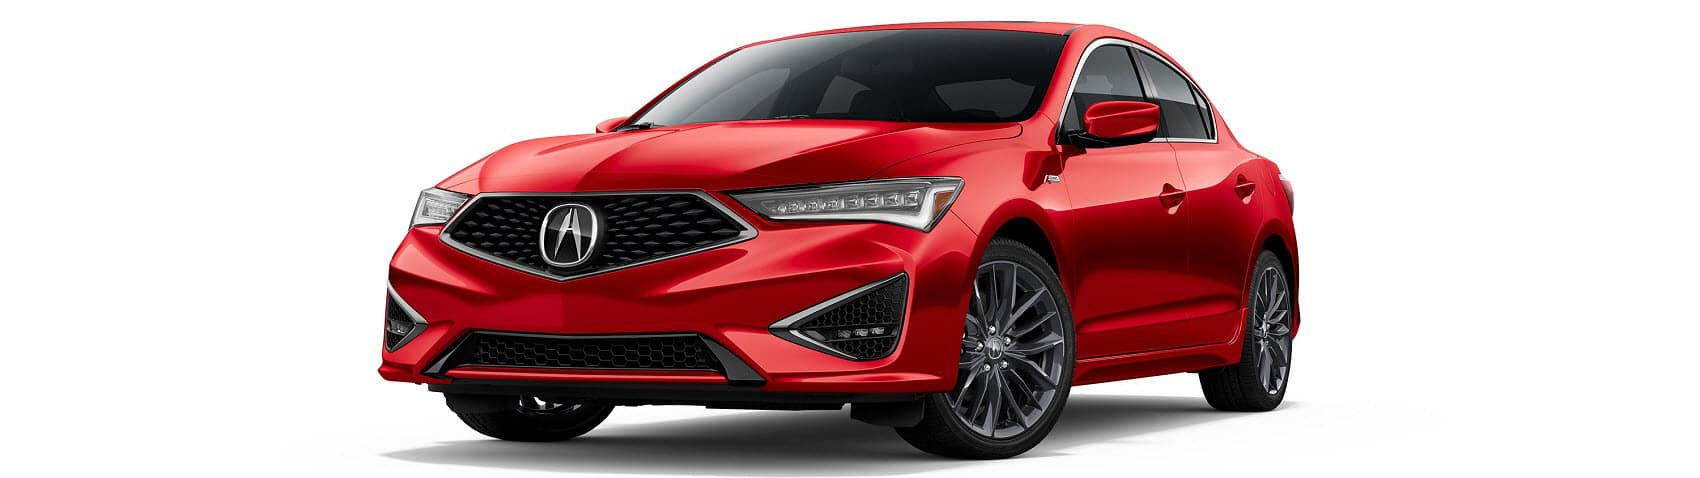 2019 Acura IlX Red Pearl